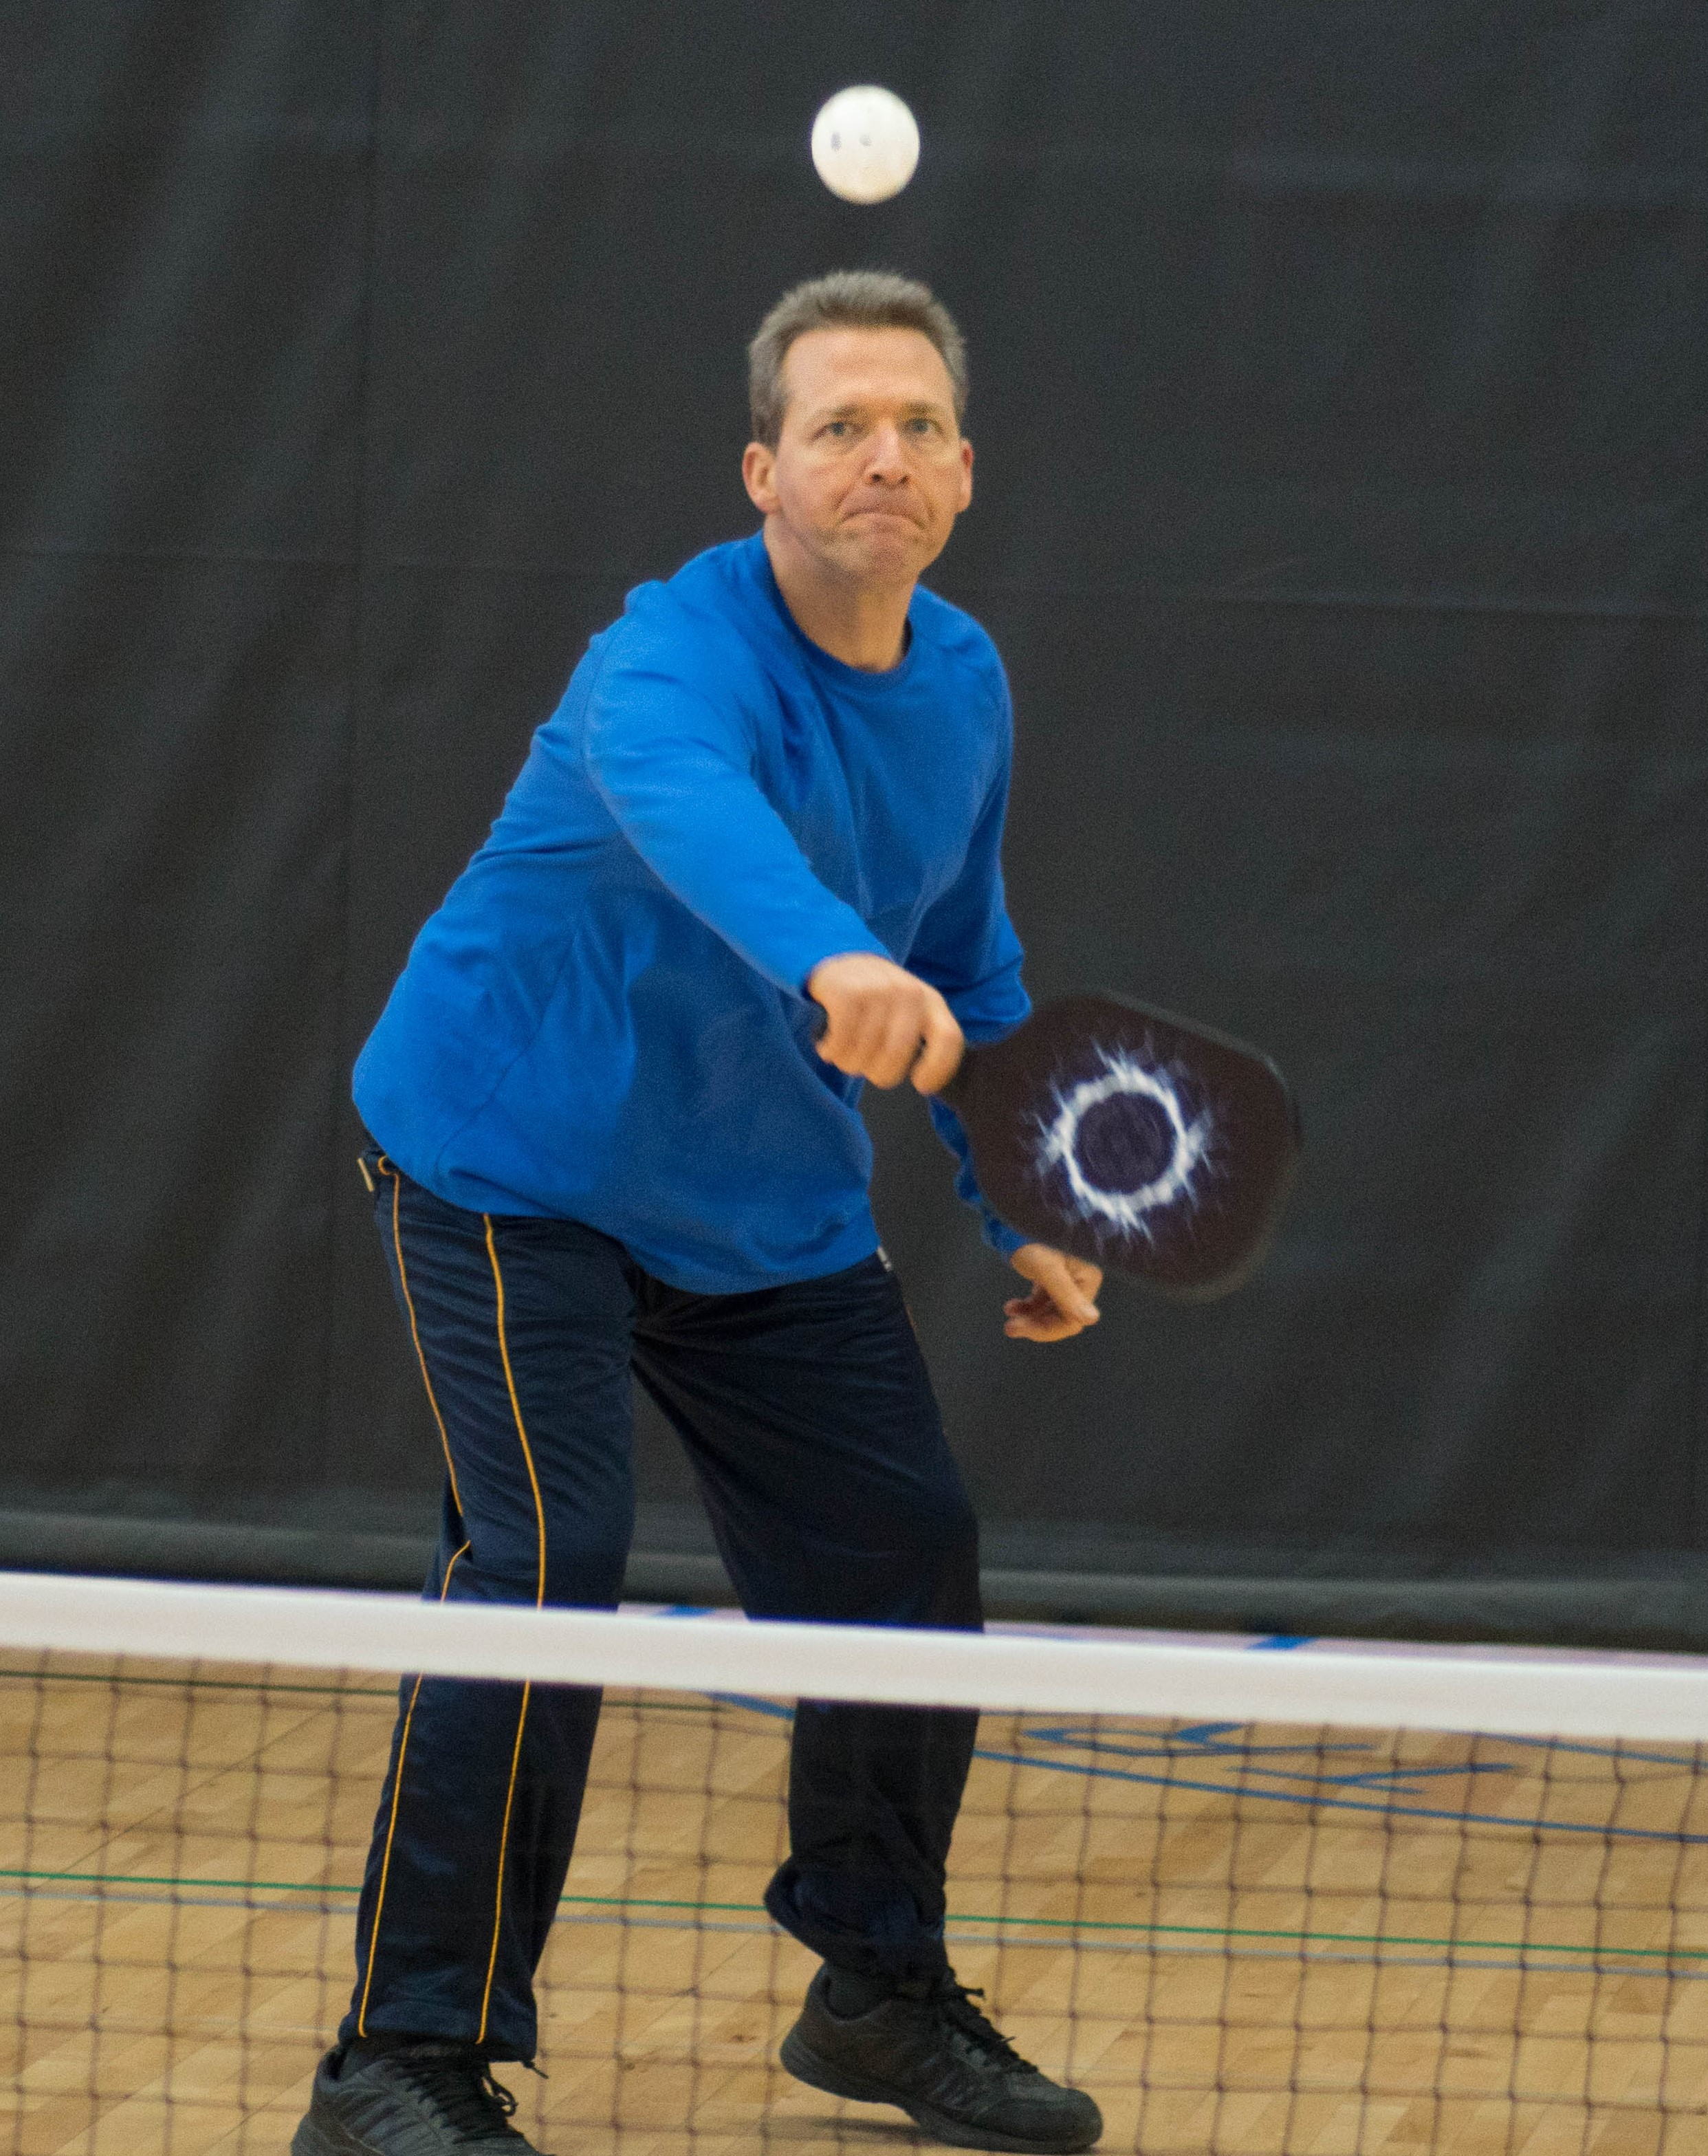 Springville among growing number of communities to offer pickleball